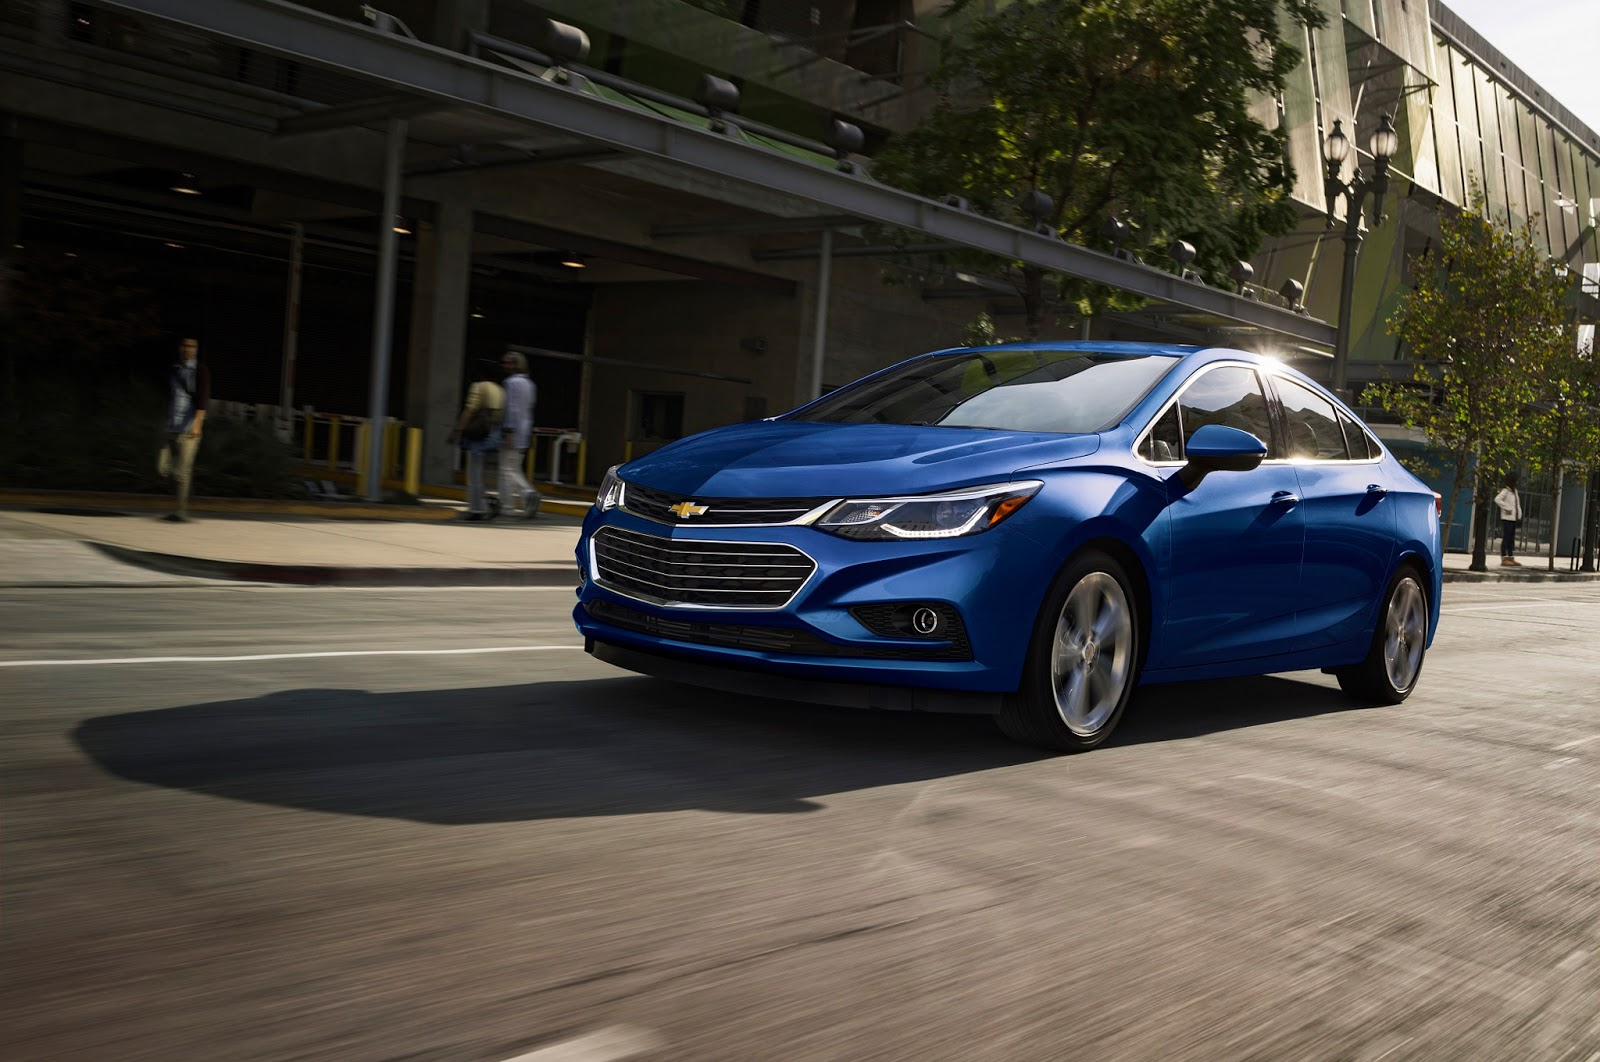 Cruze chevy cruze 2011 review : Carshighlight - cars review, concept, Specs, Price: Chevrolet ...